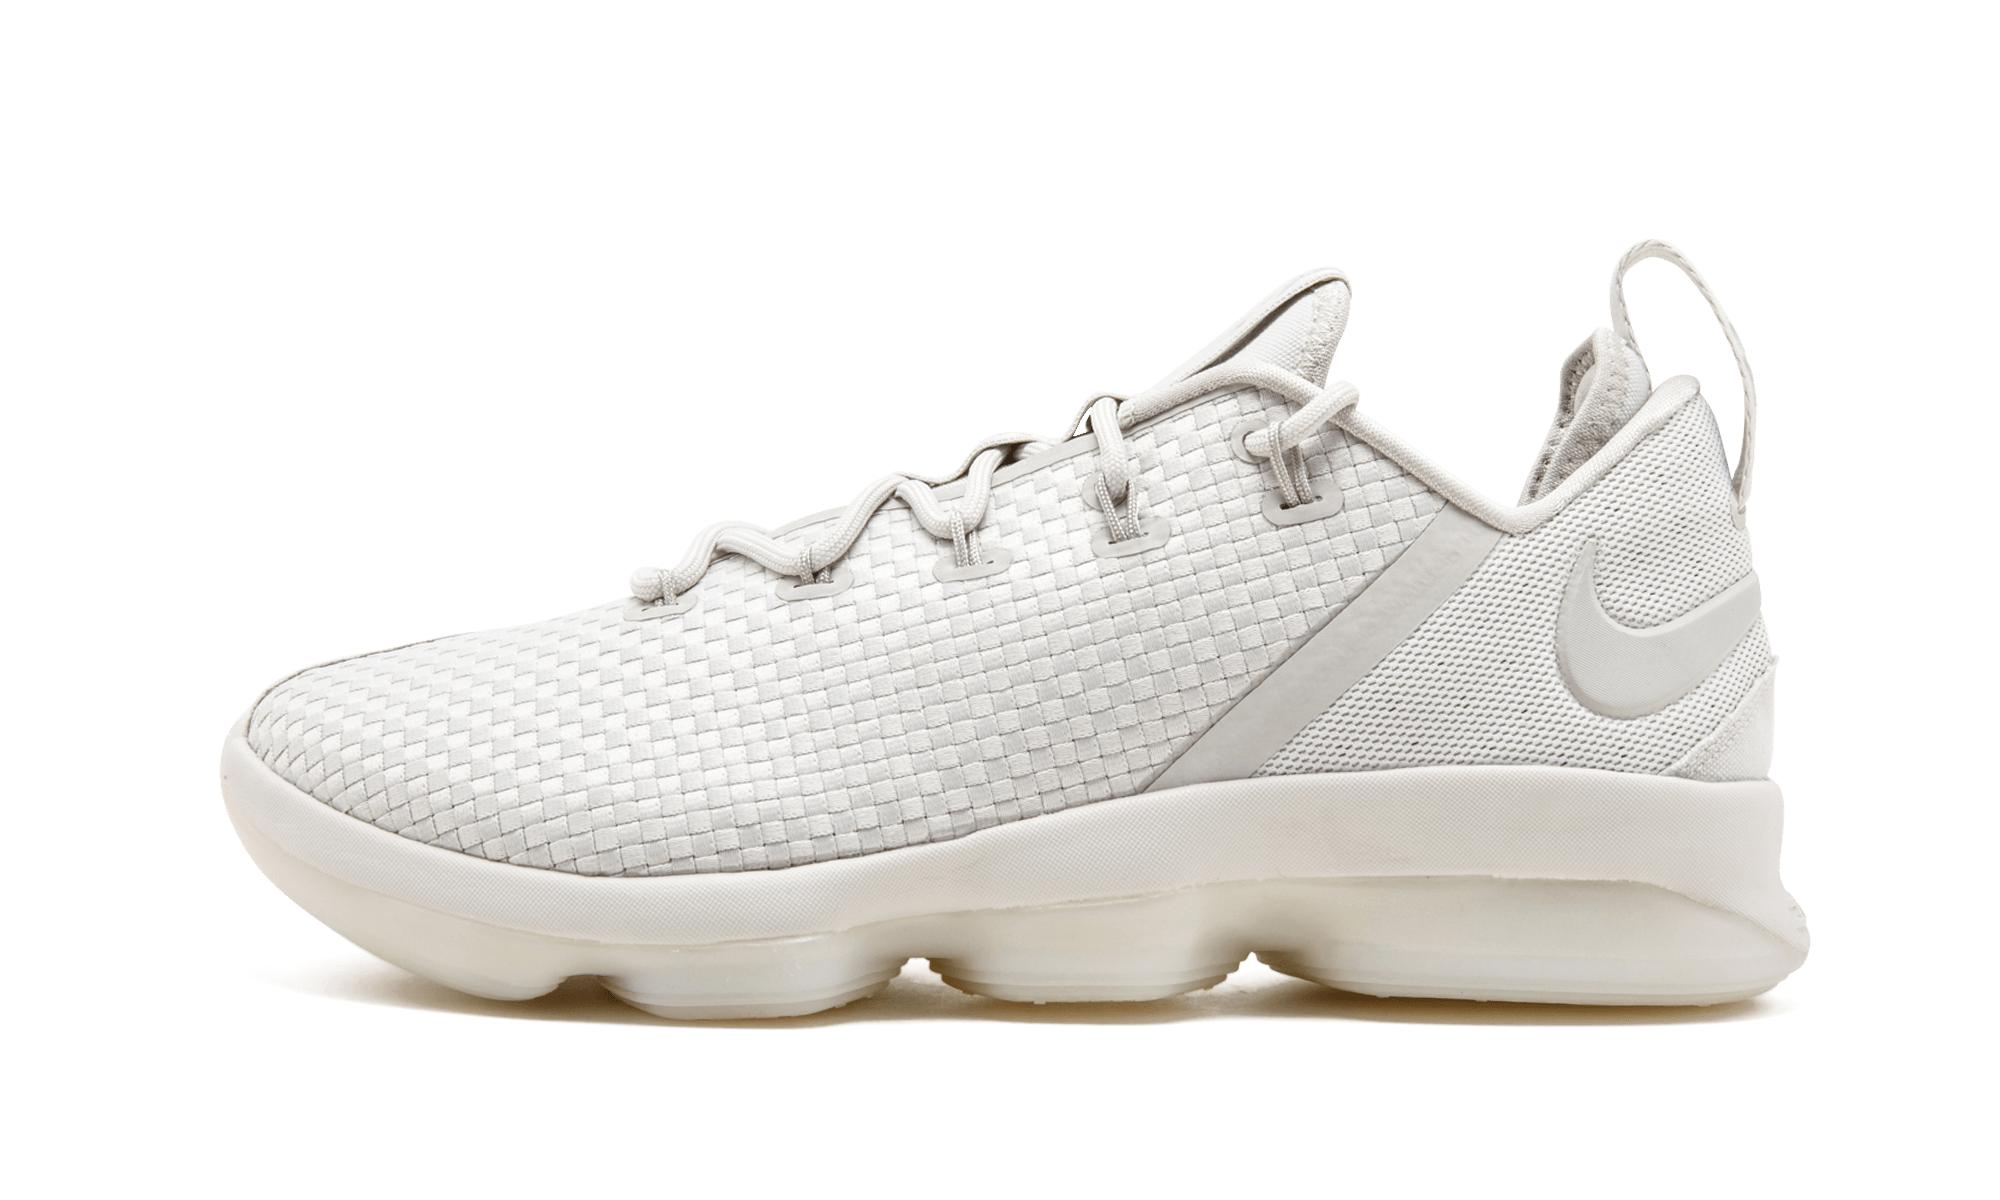 Nike Lebron Xiv Low in White - Lyst 78d3965af